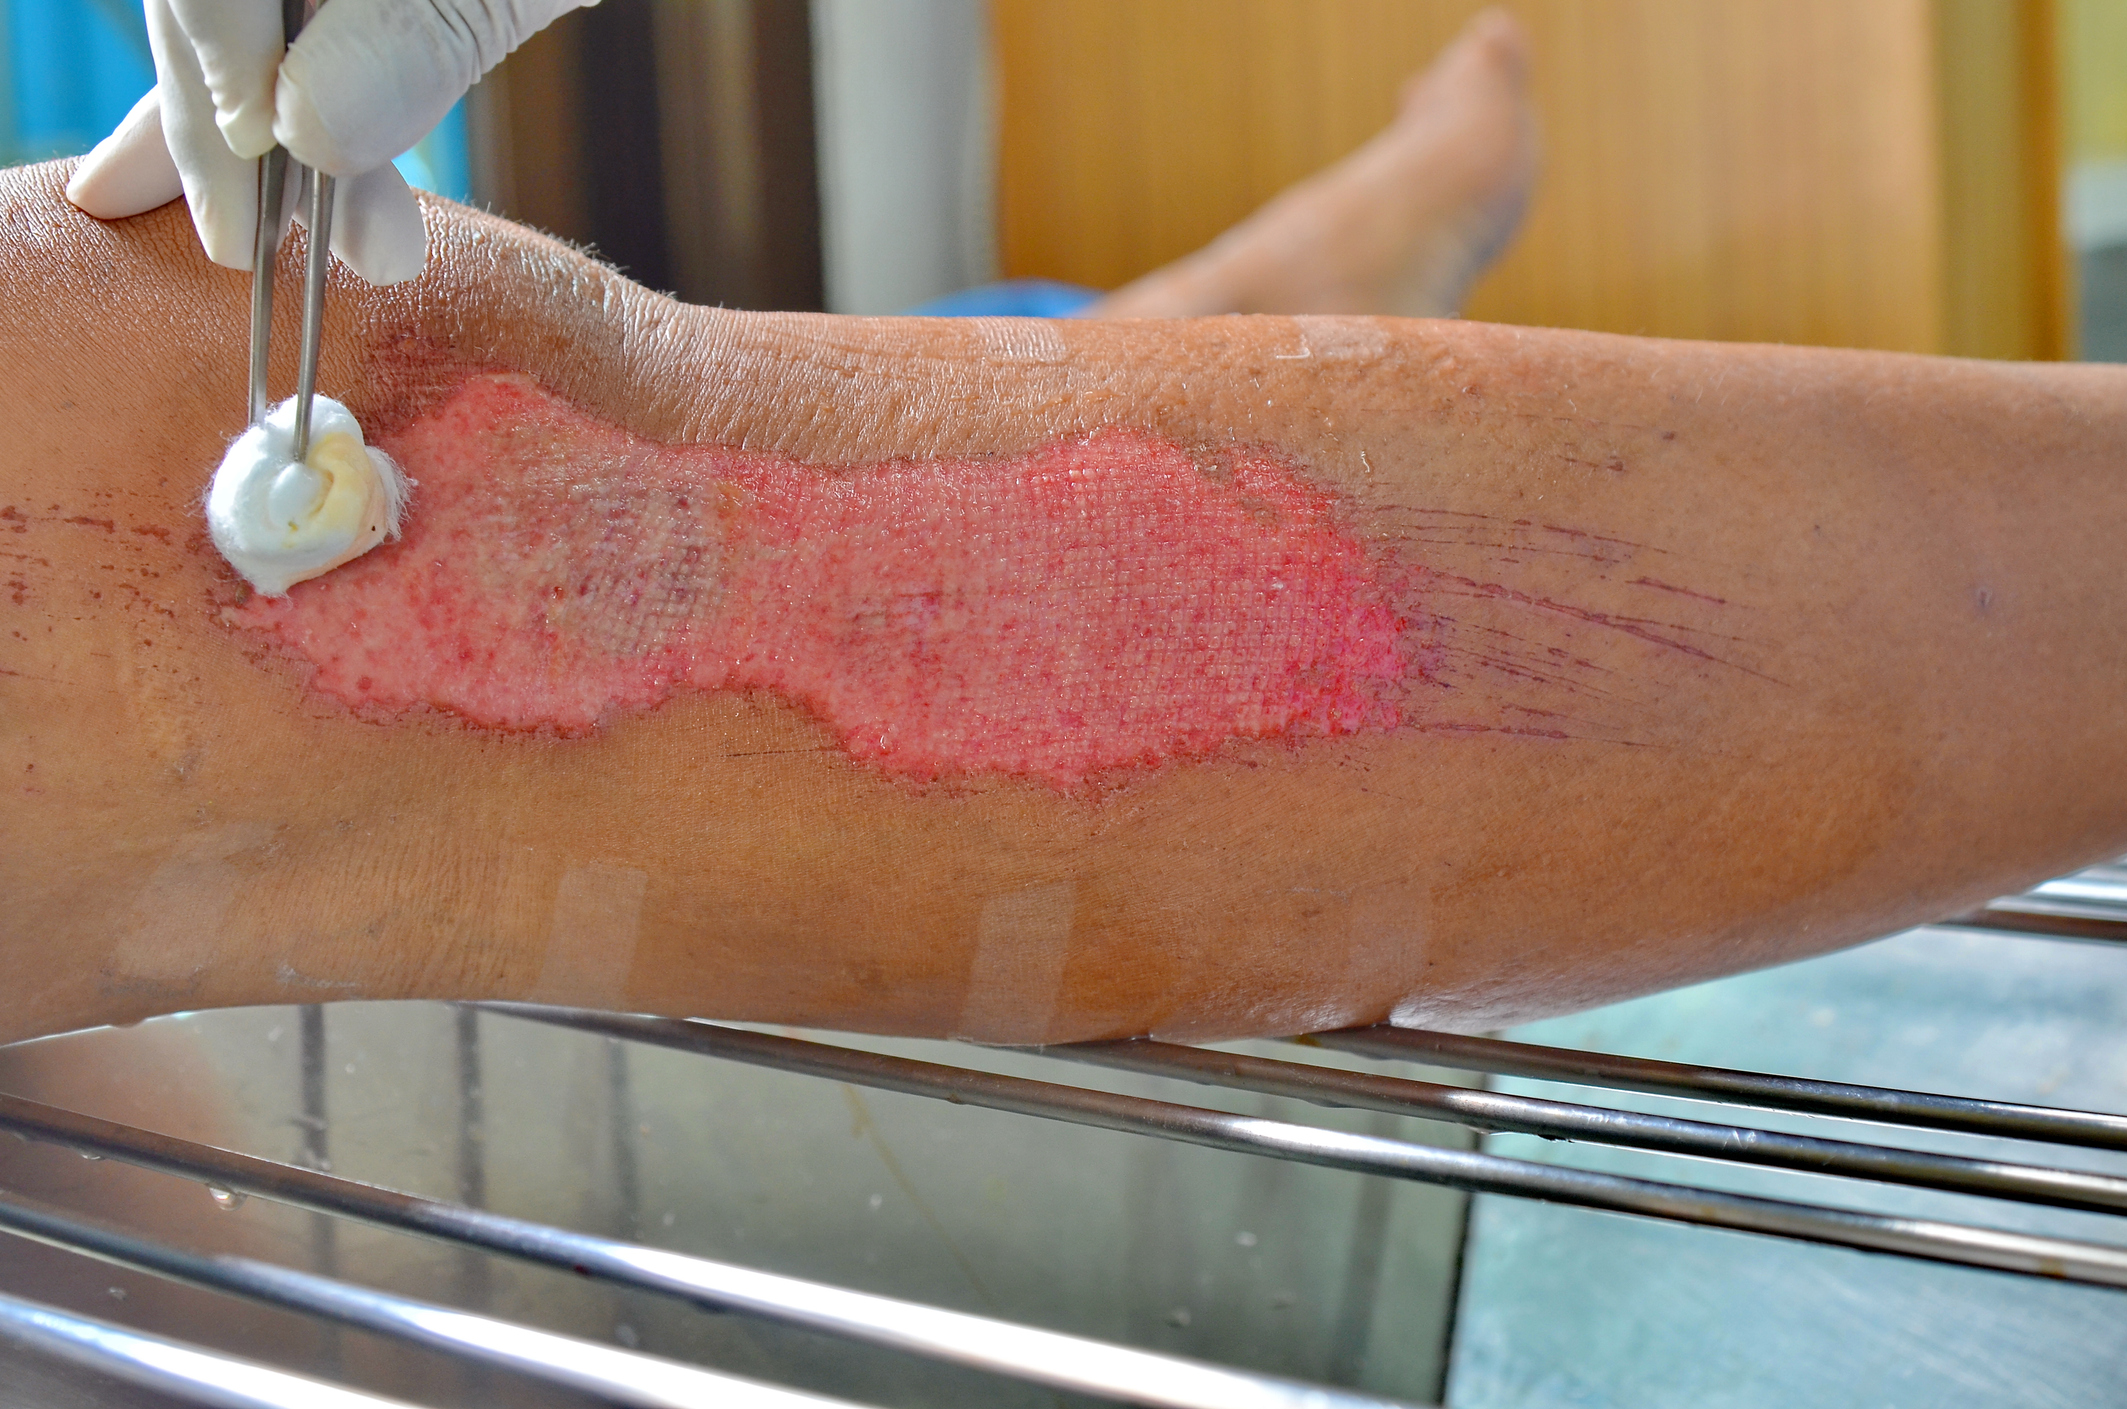 Wound Assessment and Documentation